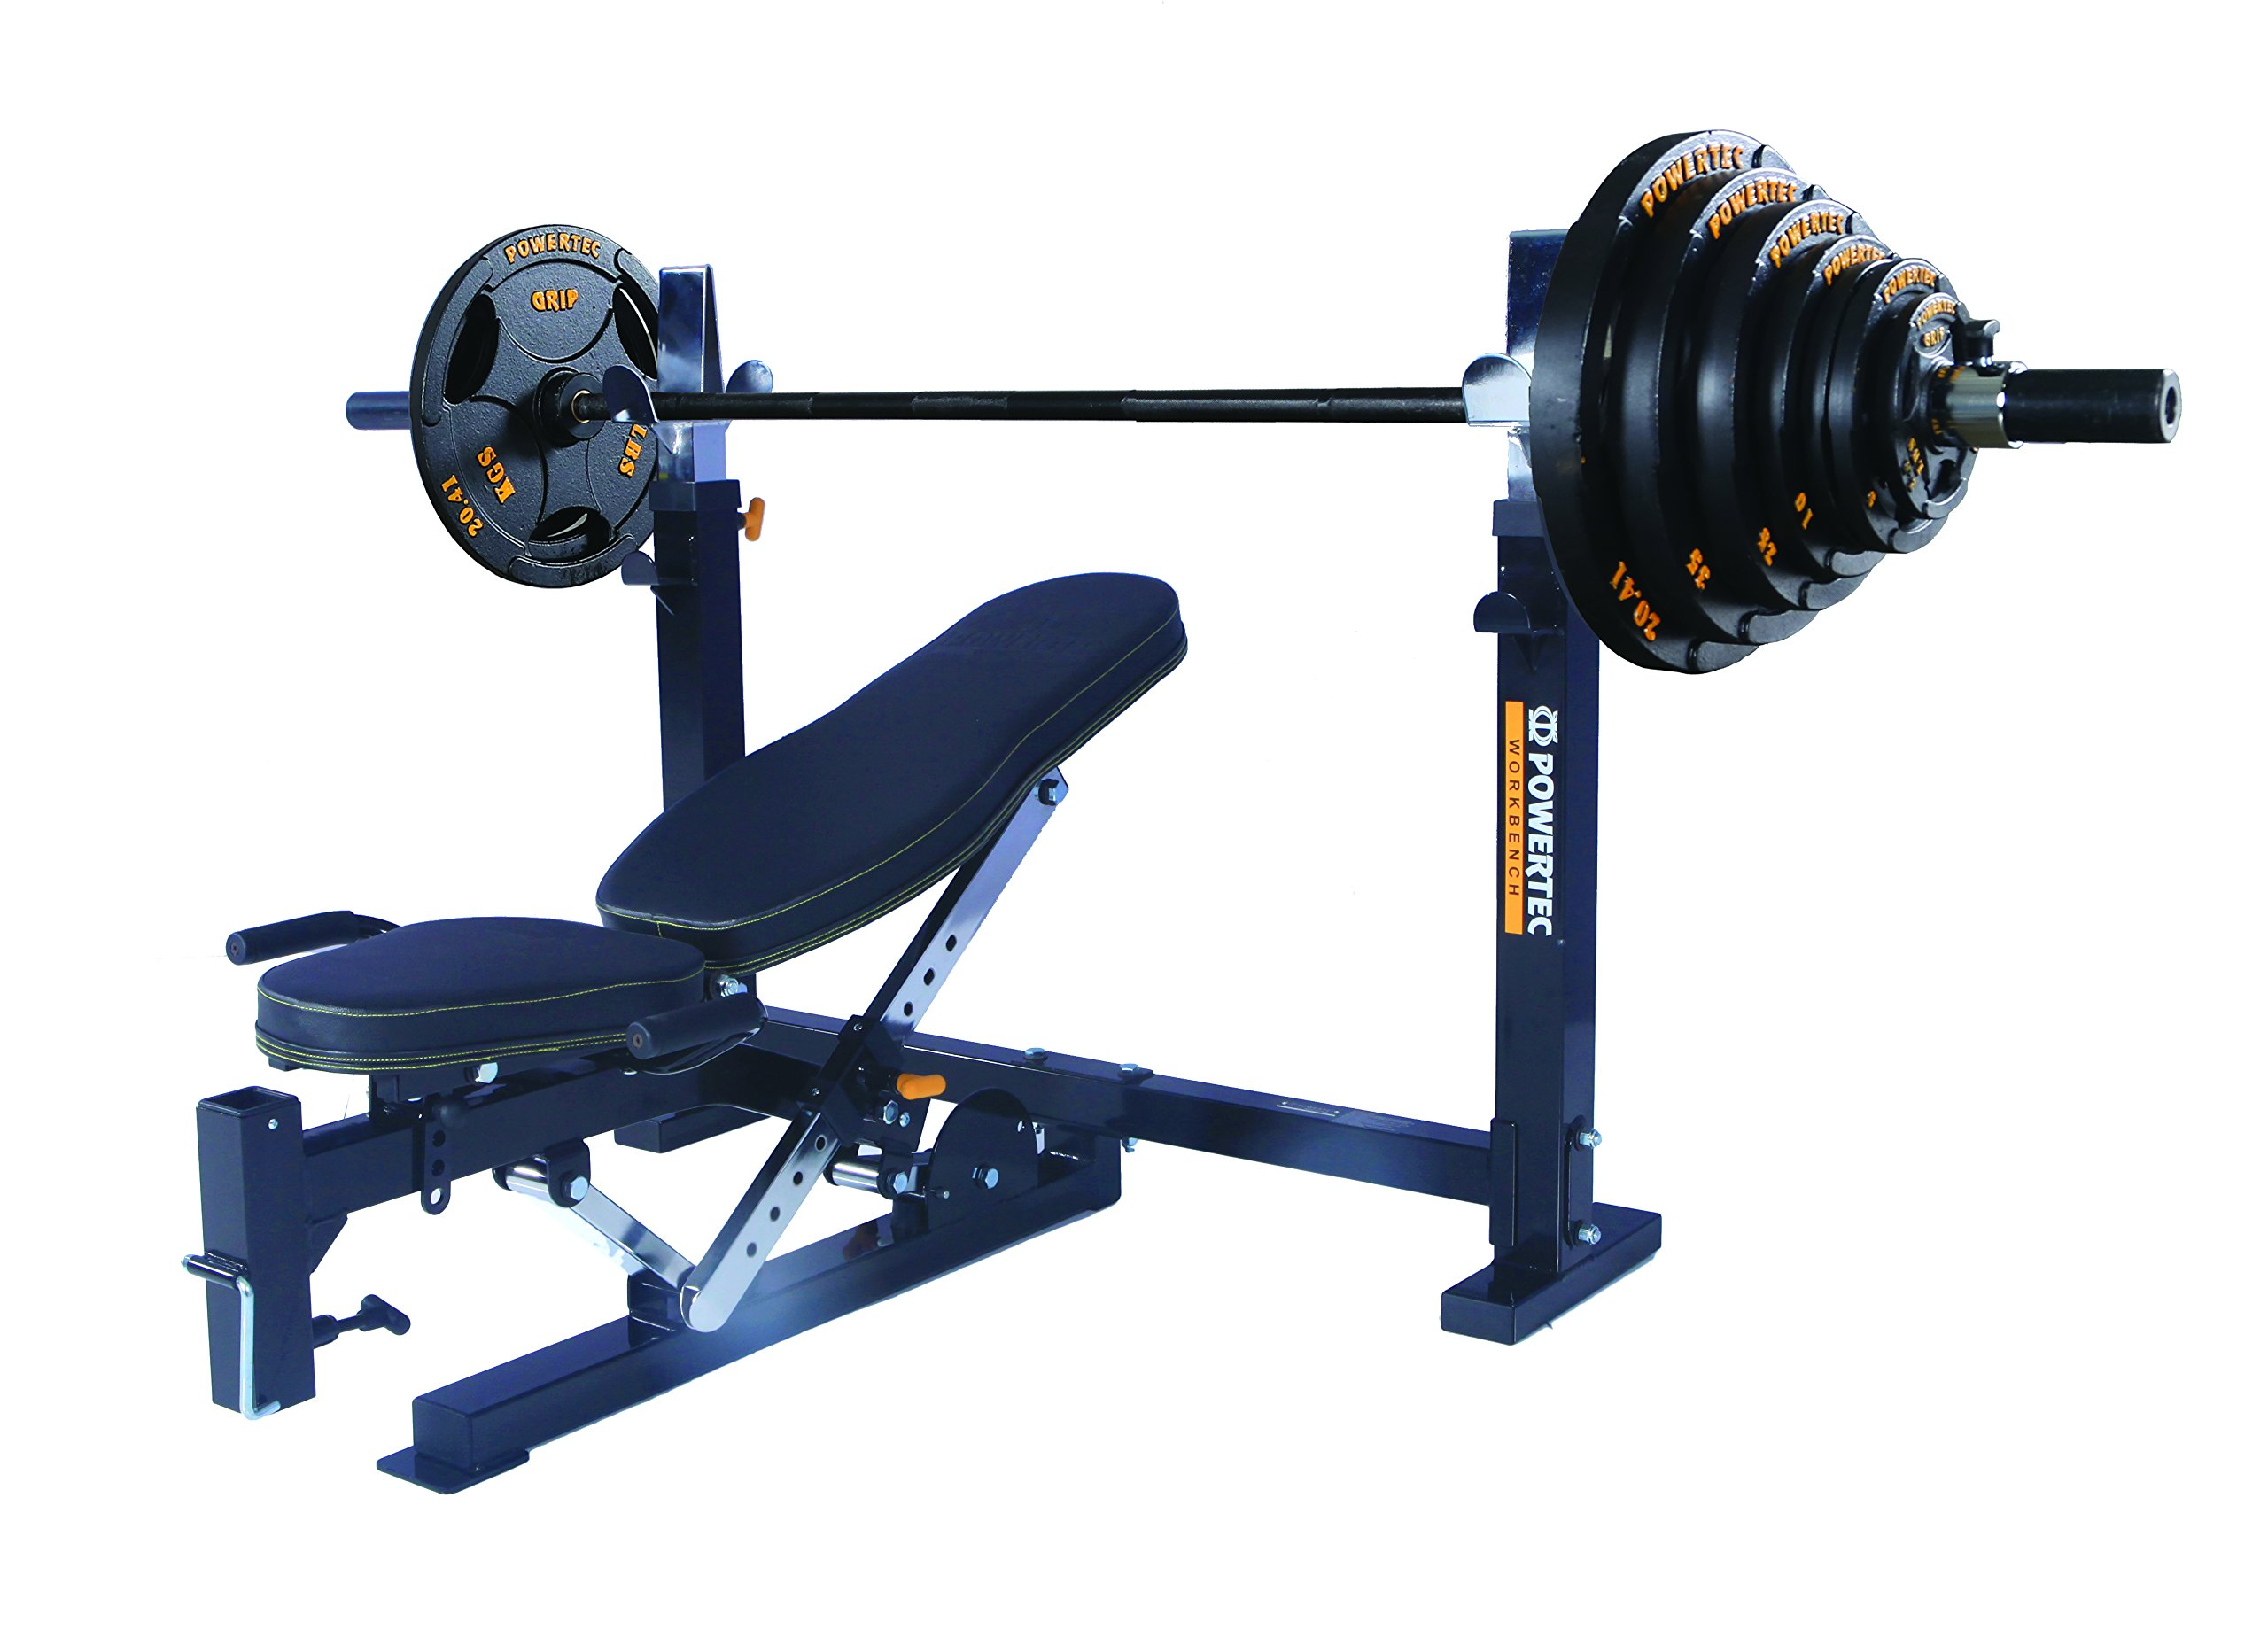 Powertec Workbench Olympic Bench (WB-OB15) + Olympic Bar and Weight Set (OS-300-B)